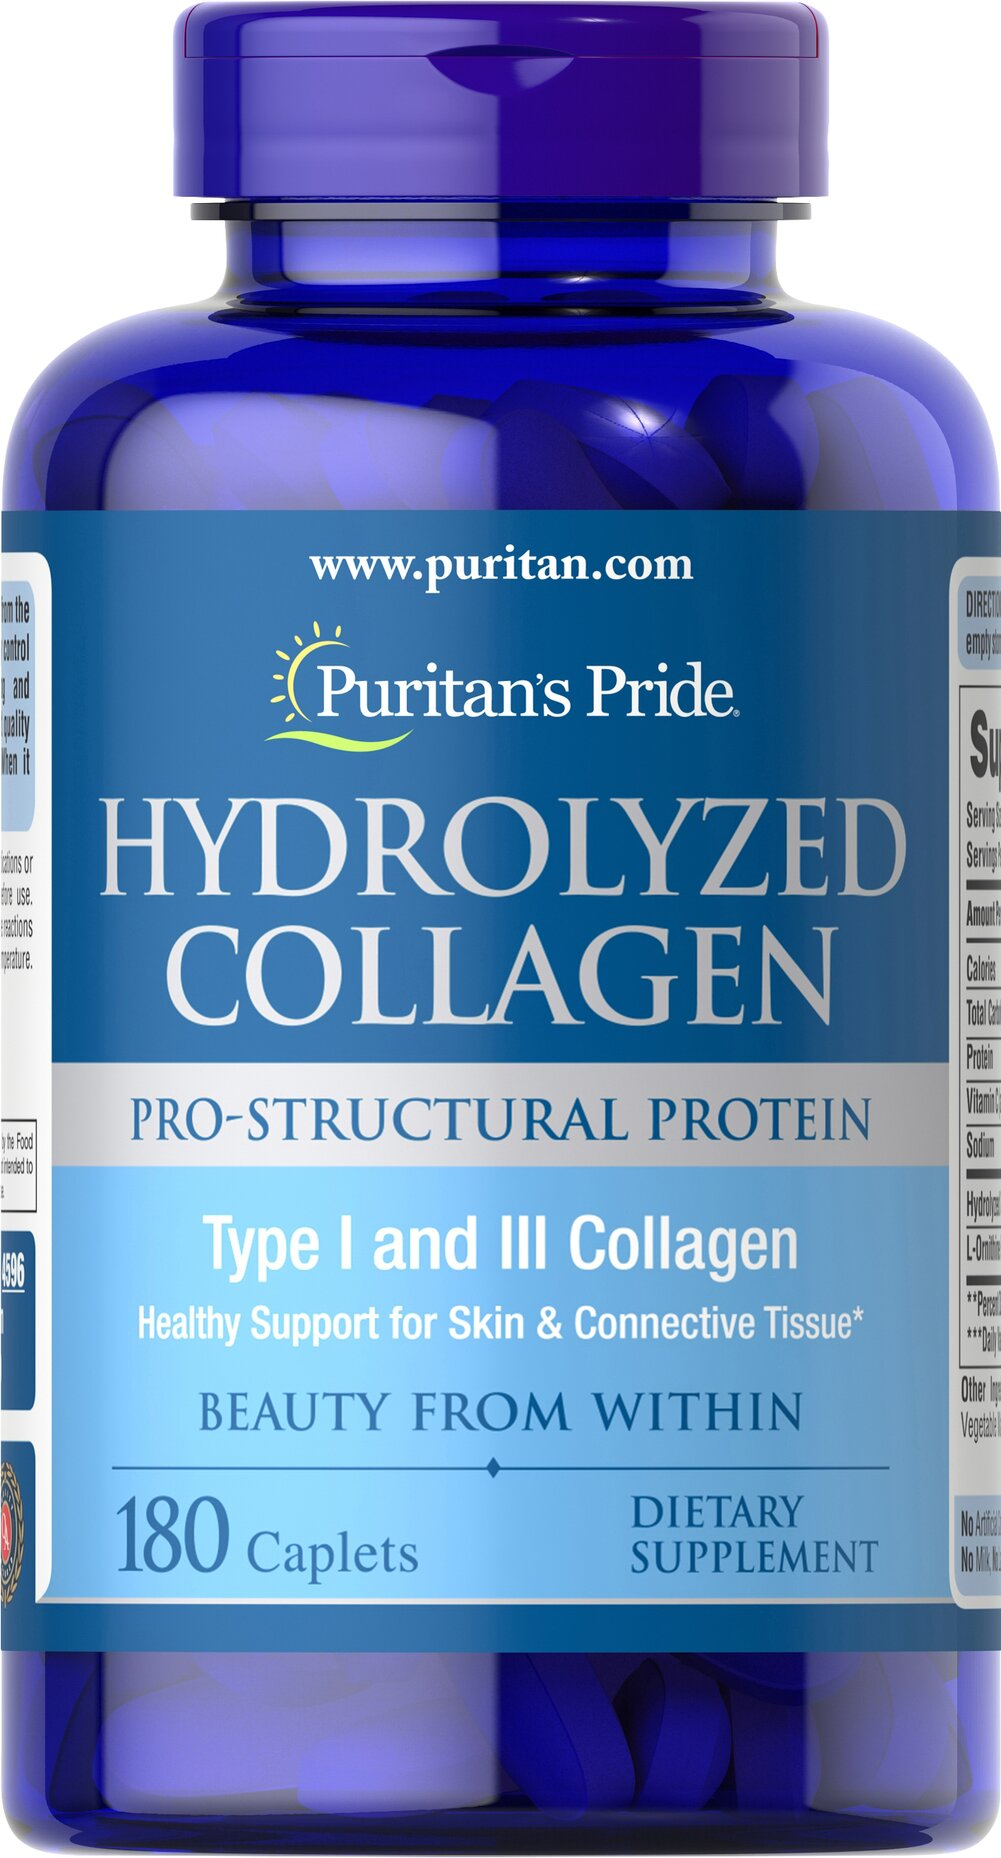 Hydrolyzed Collagen 1000 mg <p>Restore Strength and Flexibility to Hair, Skin and Nails</p><p>This 100% pure collagen protein supplement provides the major building materials for growth and maintenance of nails, hair and skin. Collagen is also an essential component of muscles, tendons, cartilage and teeth.**</p> 180 Caplets 1000 mg $15.39